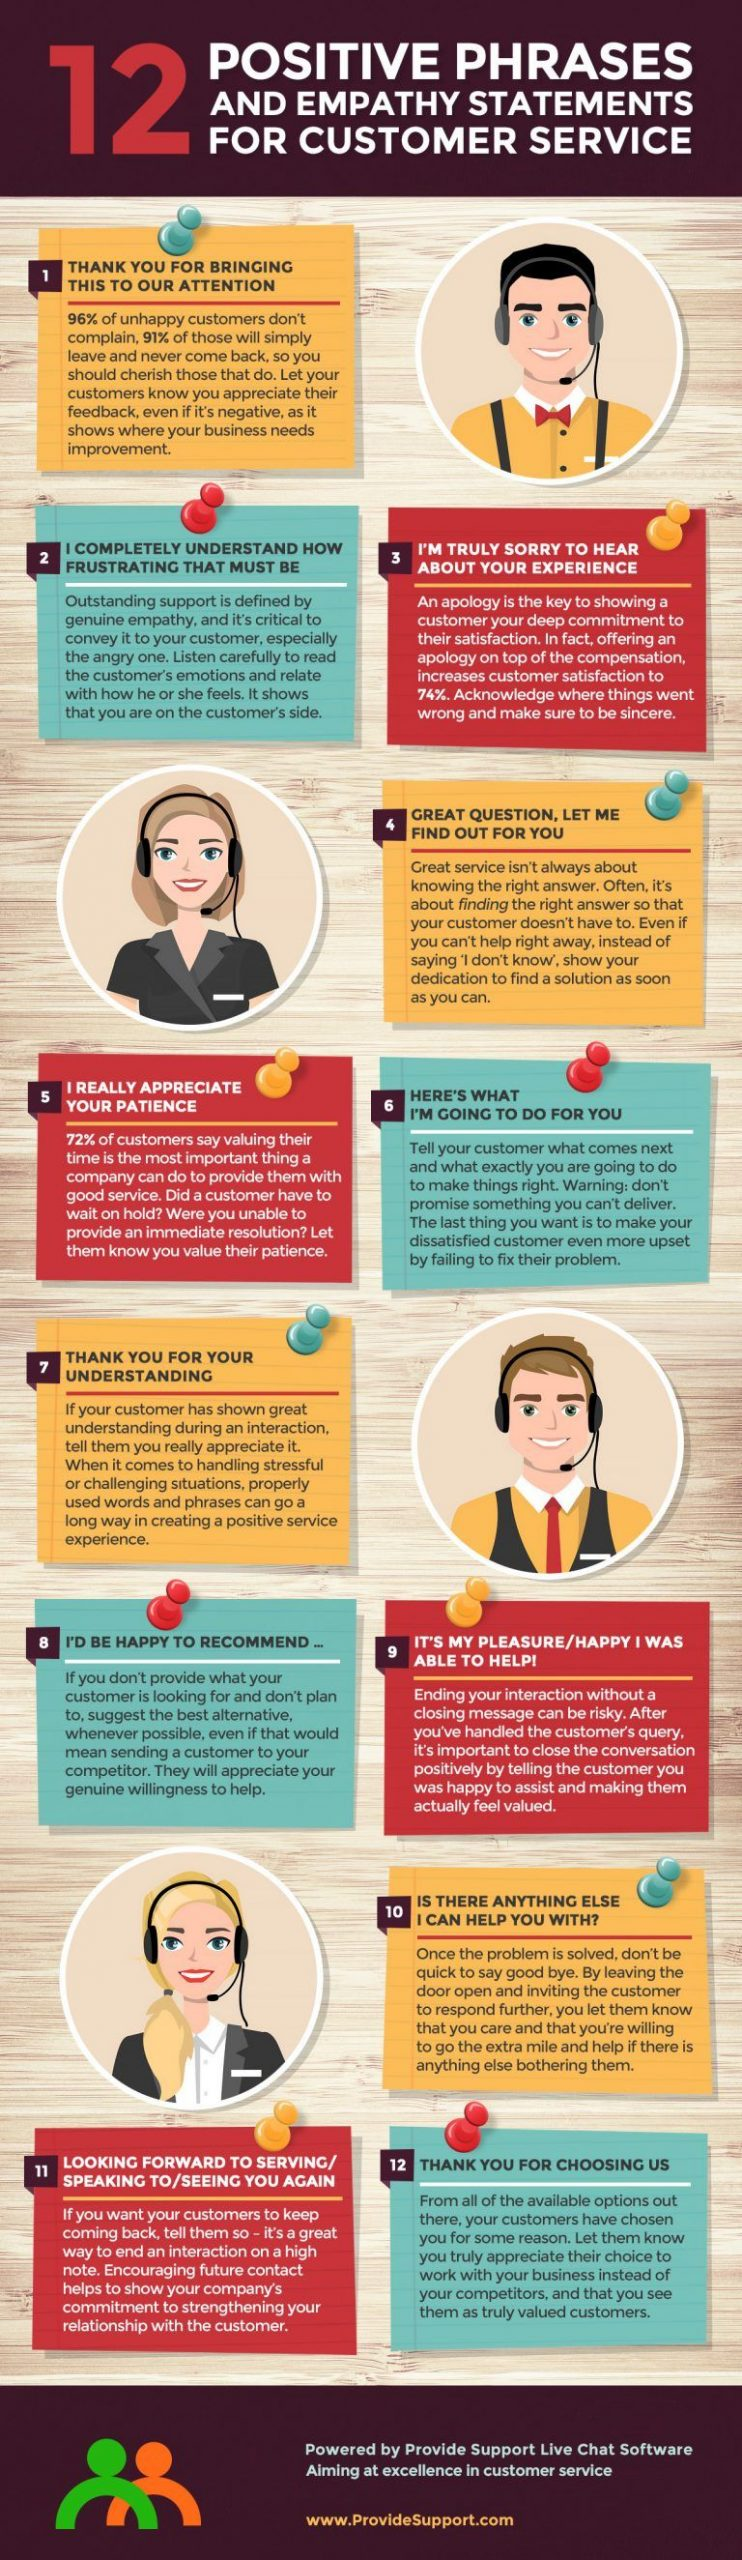 Resume for Customer Service Job Of 12 Positive Phrases and Empathy Statements for Customer Service Infographic